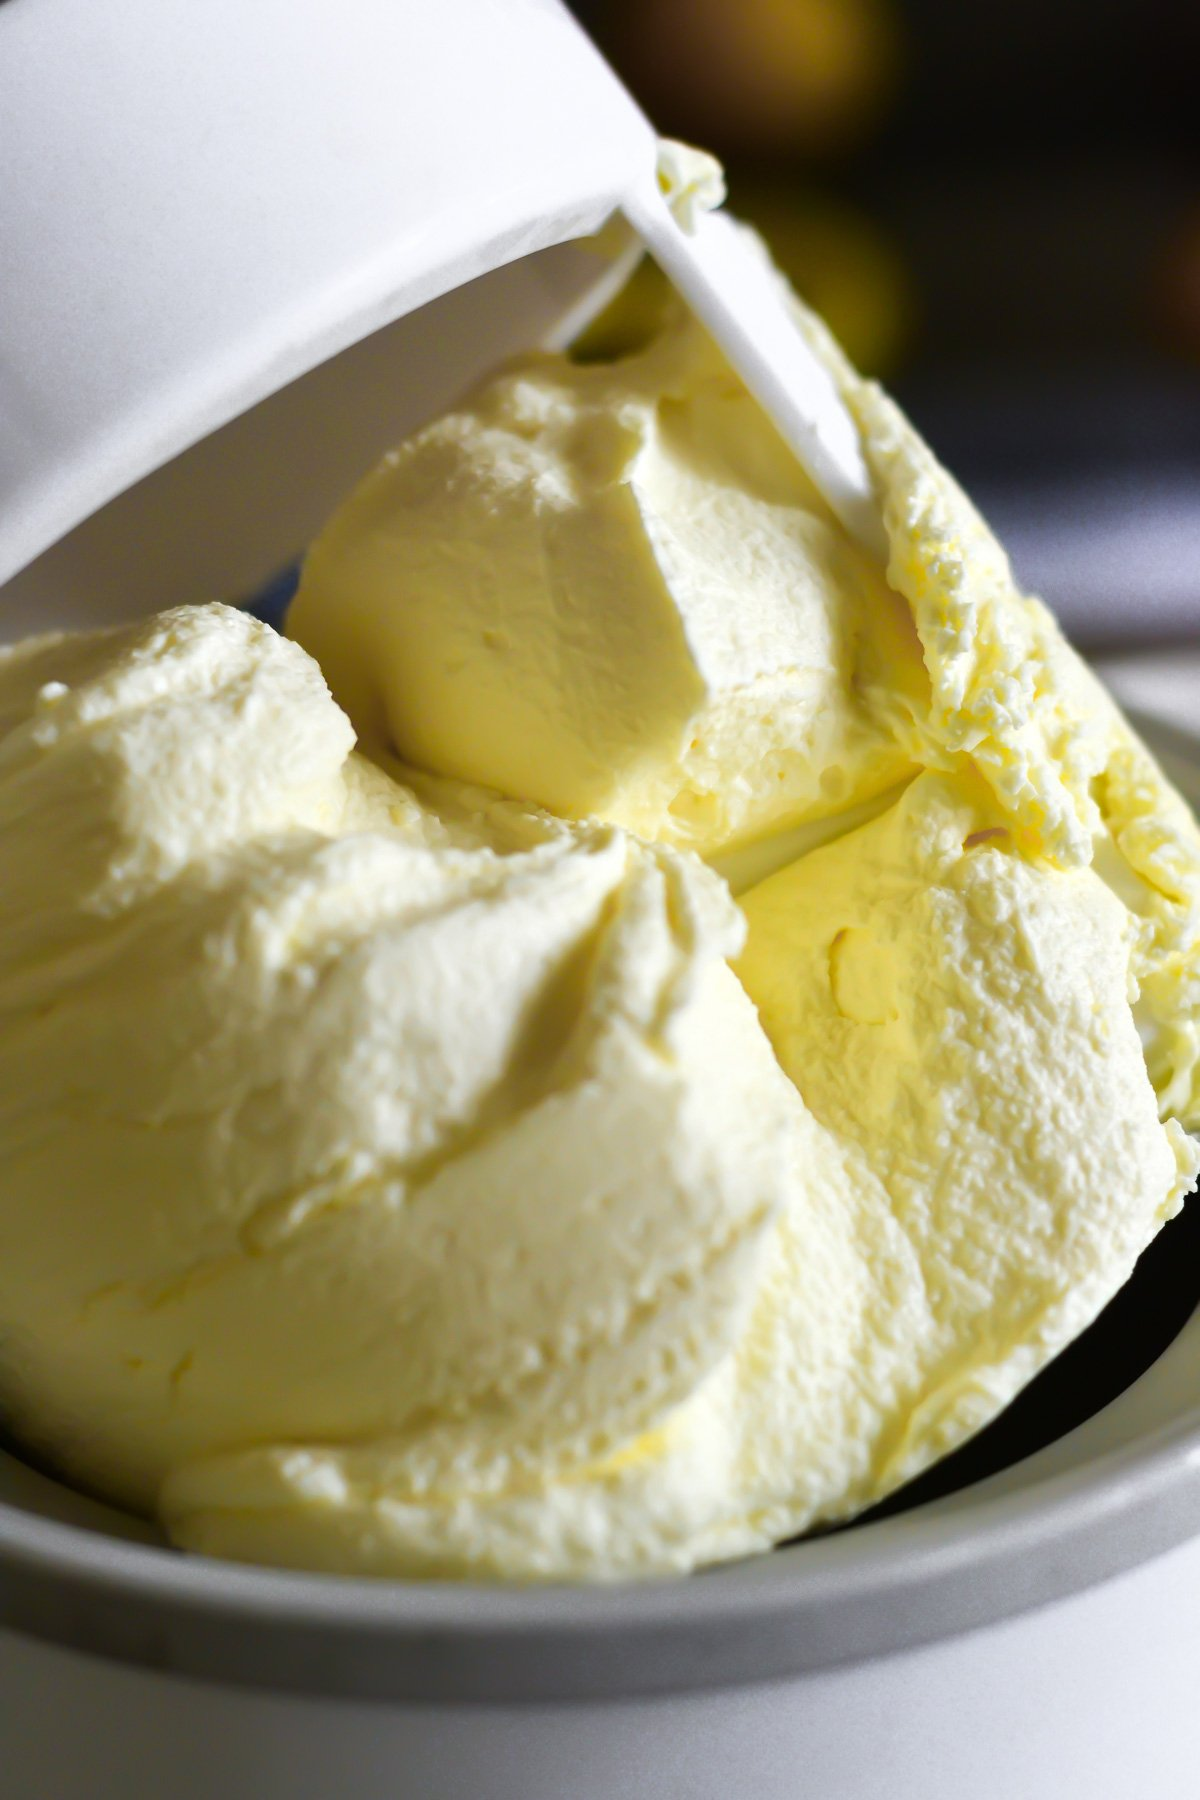 fresh lemon ice cream coming out of the machine